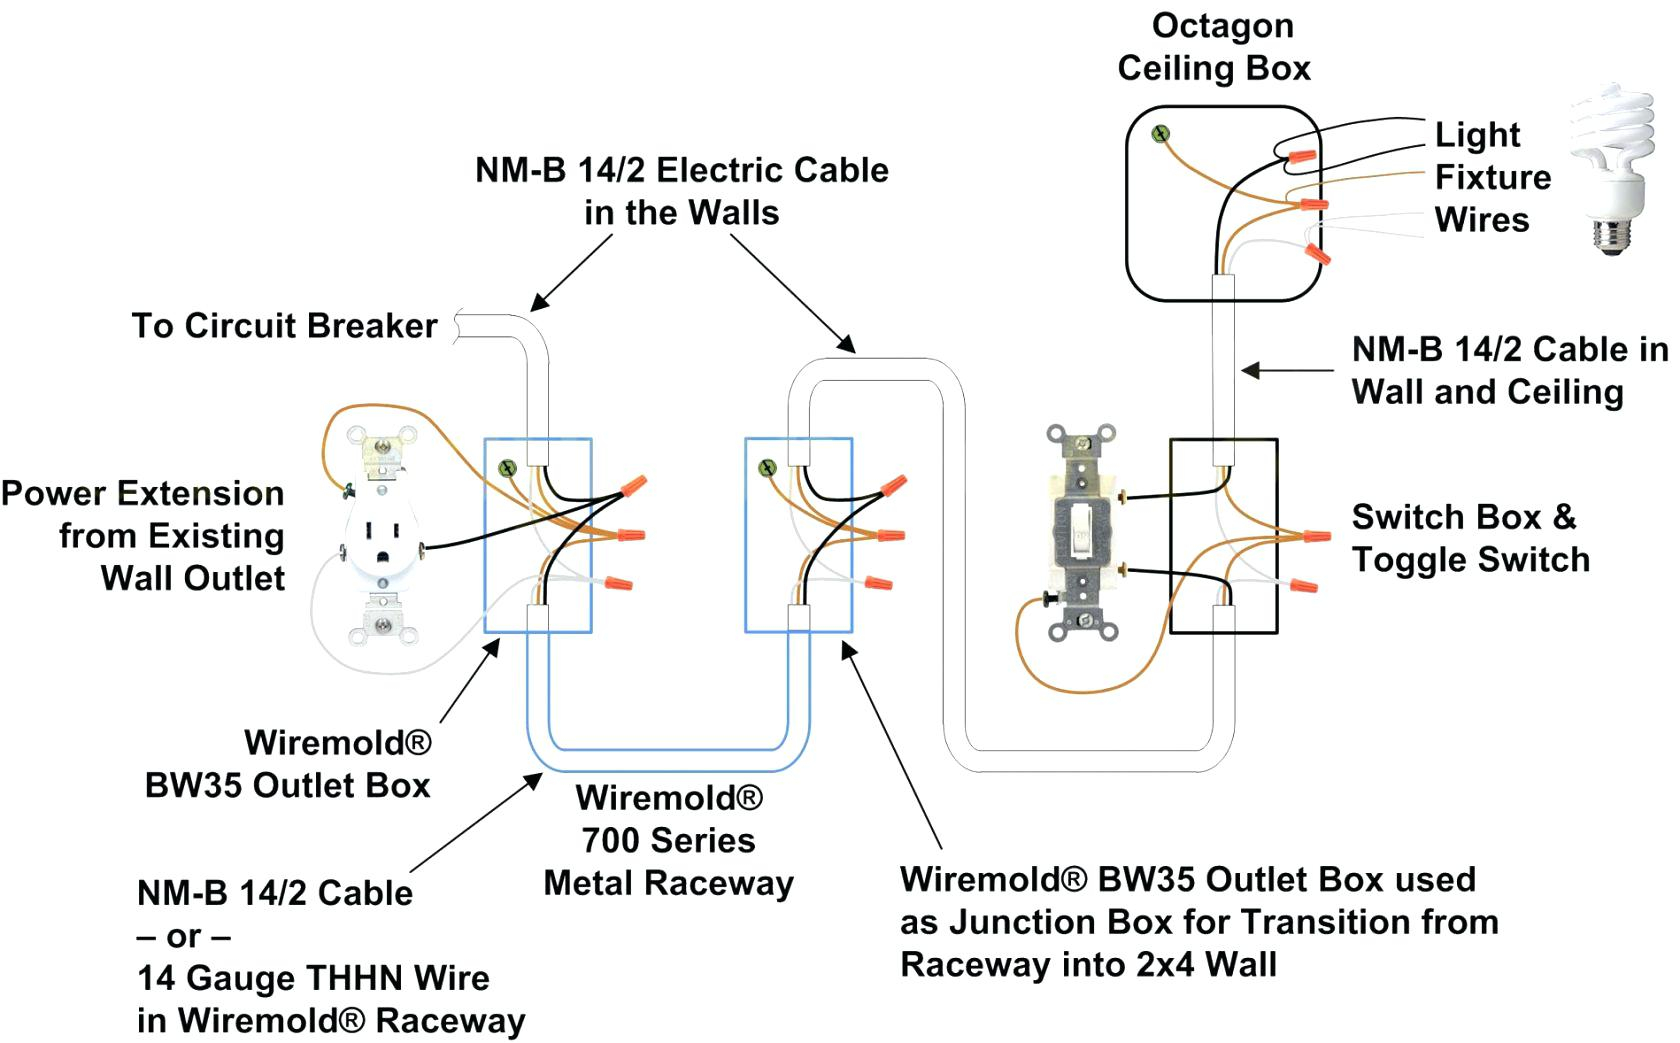 DIAGRAM] 50 Amp Extension Cord Wiring Diagram FULL Version HD Quality Wiring  Diagram - DIAGRAMPHOTOAA.SAMANIFATTURA.ITsamanifattura.it